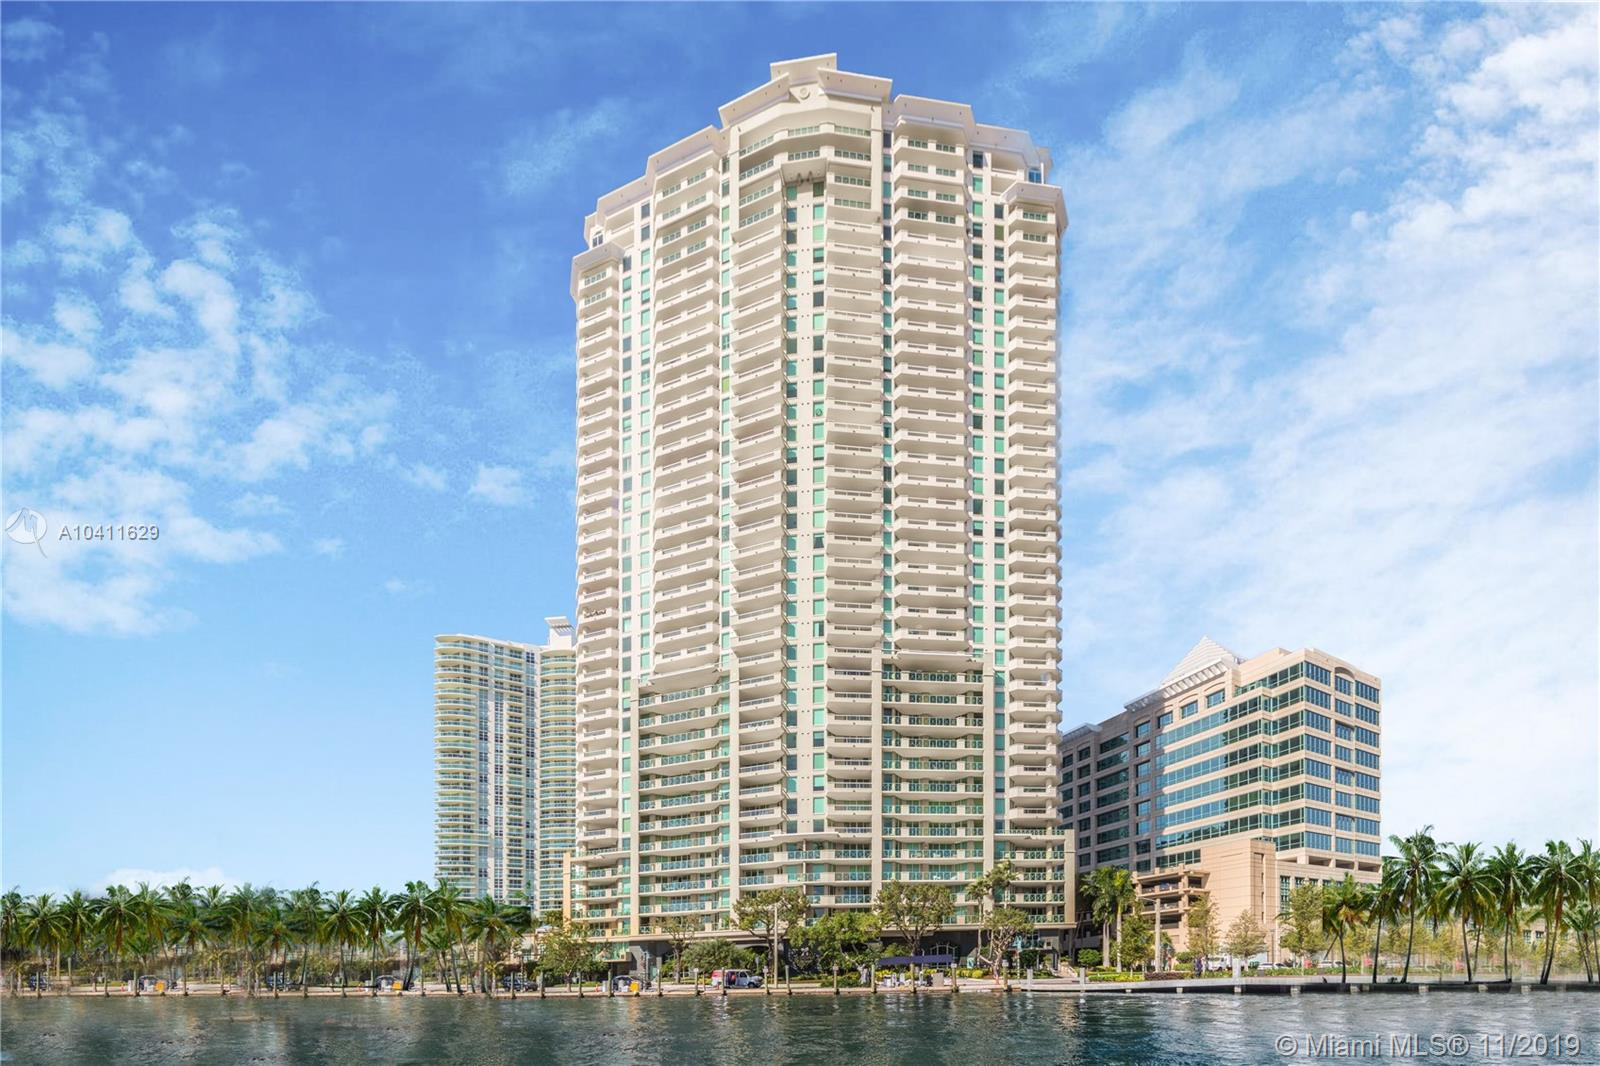 DUE TO COVID 19, PLEASE CALL LISTING AGENT FOR ADDITIONAL INFORMATION ON SHOWING   TENANT OCCUPIED /AVAILABLE MARCH 2021  UNOBSTRUCTED VIEWS FROM 03 LINE.     LUXURIOUS CONDO IN PRESTIGIOUS LAS OLAS GRAND. PANORAMIC VIEWS OF RIVER, INTRACOASTAL, OCEAN & PORT. LOCATED IN ONE OF THE MOST SOUGHT AFTER ADDRESSES IN DOWNTOWN FT. LAUDERDALE/LAS OLAS. THIS UNIT FEATURES MARBLE FLOORS THROUGHOUT, GOURMET GRANITE KITCHEN, TOP OF THE LINE APPLIANCES, CUSTOM PAINT, LIGHT FIXTURES.   ENJOY EAST VIEWS OF RIVER, INTRACOASTAL AND OCEAN WITH WEST VIEWS OF DOWNTOWN. BUILDING FEATURES 5 STAR AMENITIES INCLUDING A GYM, VALET PARKING, 24 HR SECURITY, & A POOL.